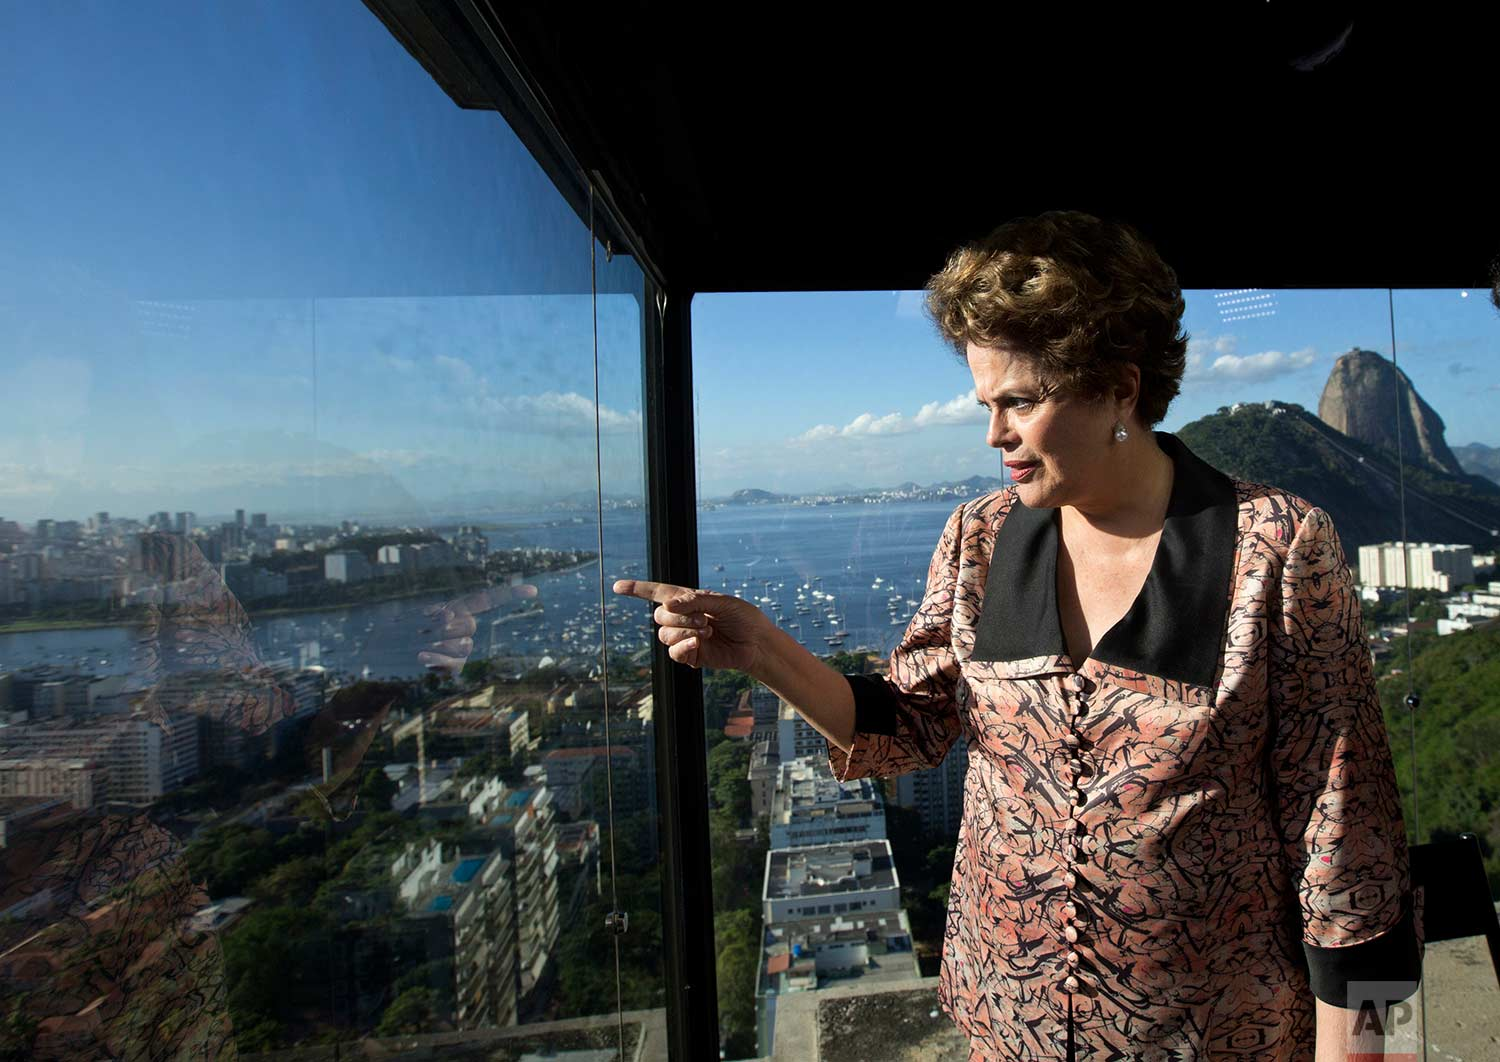 Brazil's former President Dilma Rousseff looks out over Guanabara Bay, before the start of an interview at the offices of the Associated Press in Rio de Janeiro, Brazil, Friday, July 14, 2017. (AP Photo/Silvia Izquierdo)